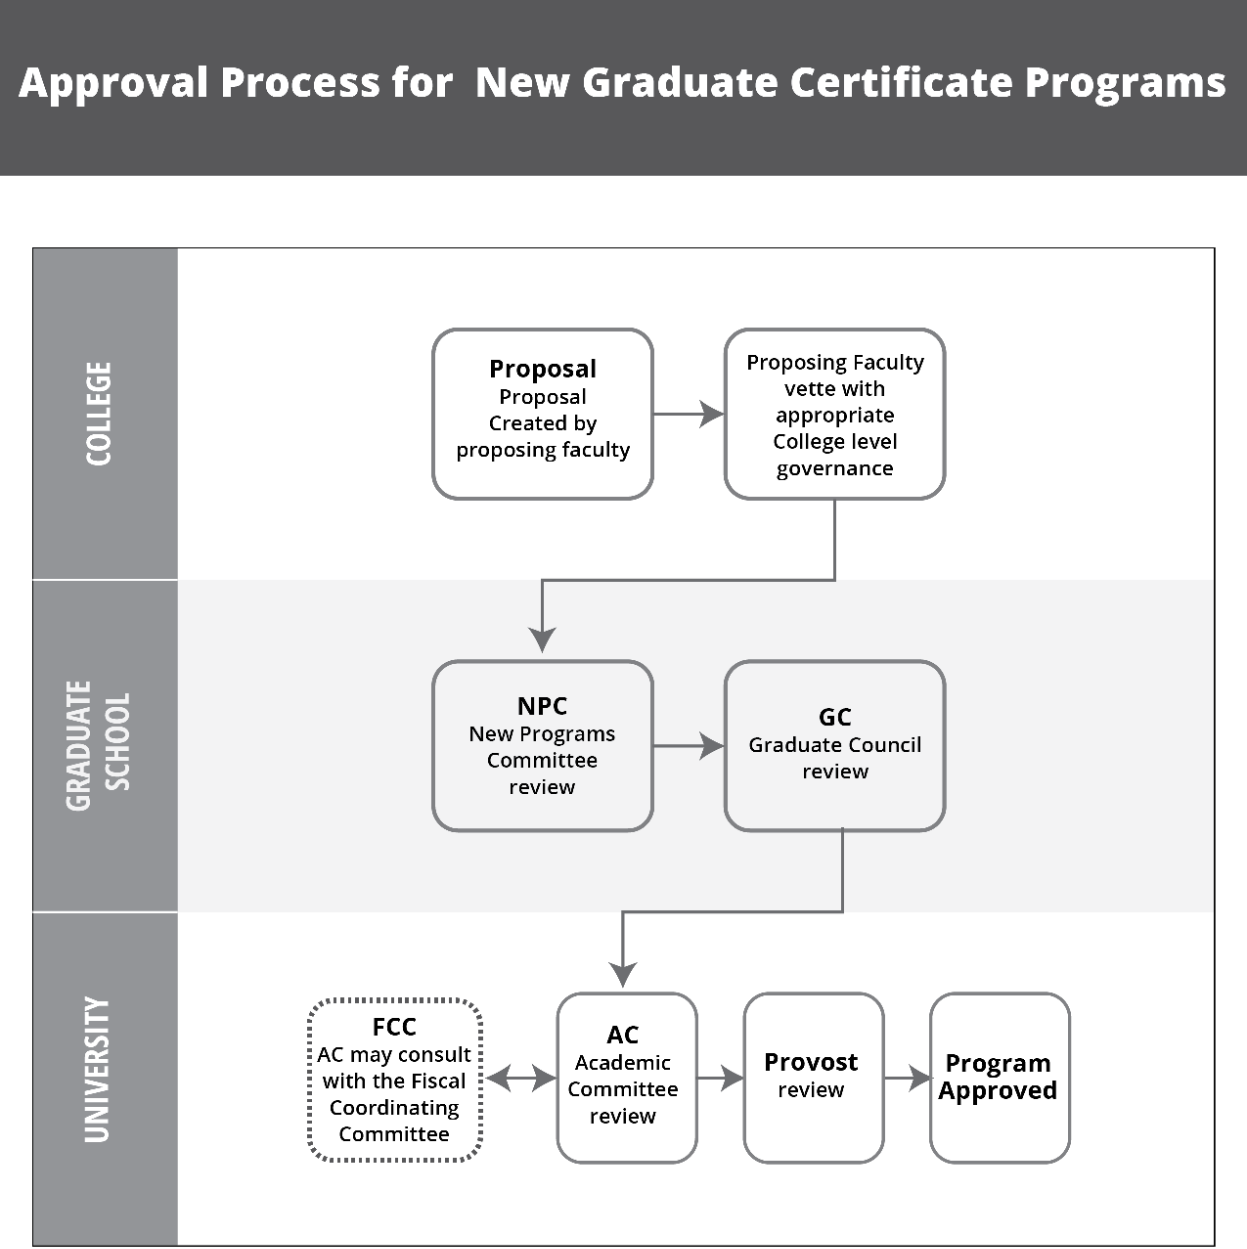 The steps for approval for a new graduate certificate program.